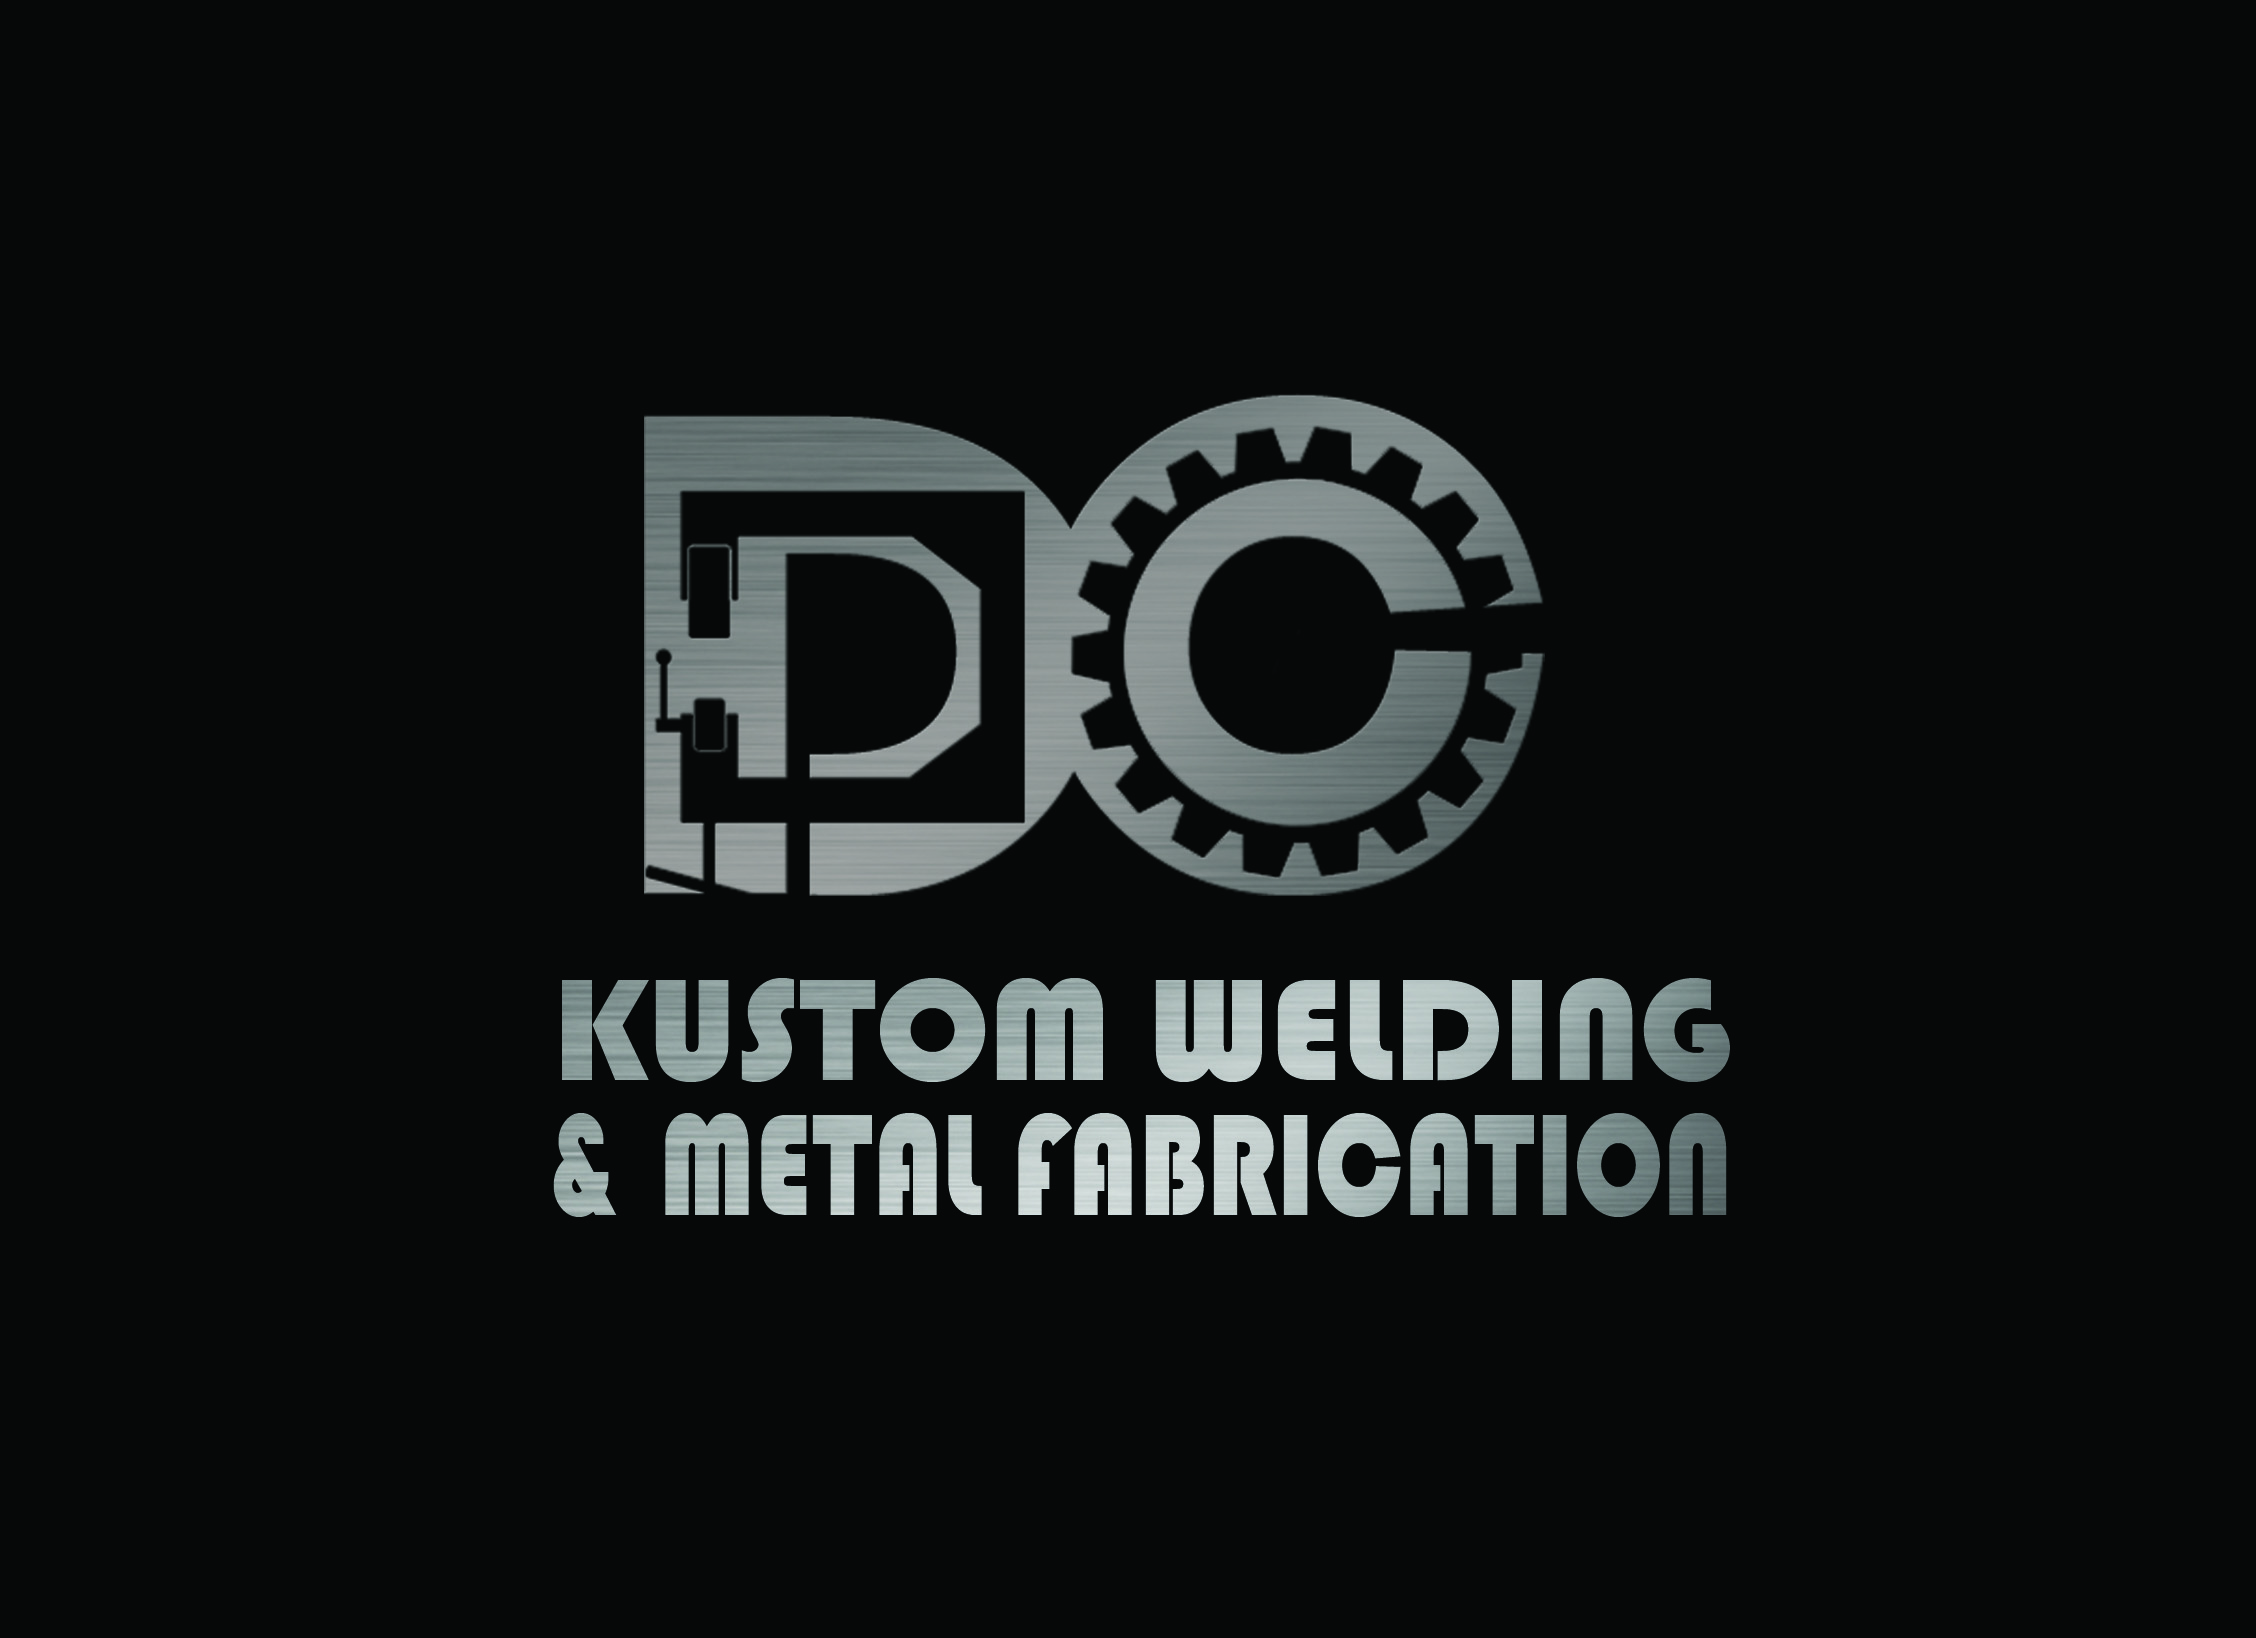 Logo Design by Arqui ACOSTA - Entry No. 73 in the Logo Design Contest Imaginative Logo Design for DC KUSTOM WELDING & METAL FABRICATION.